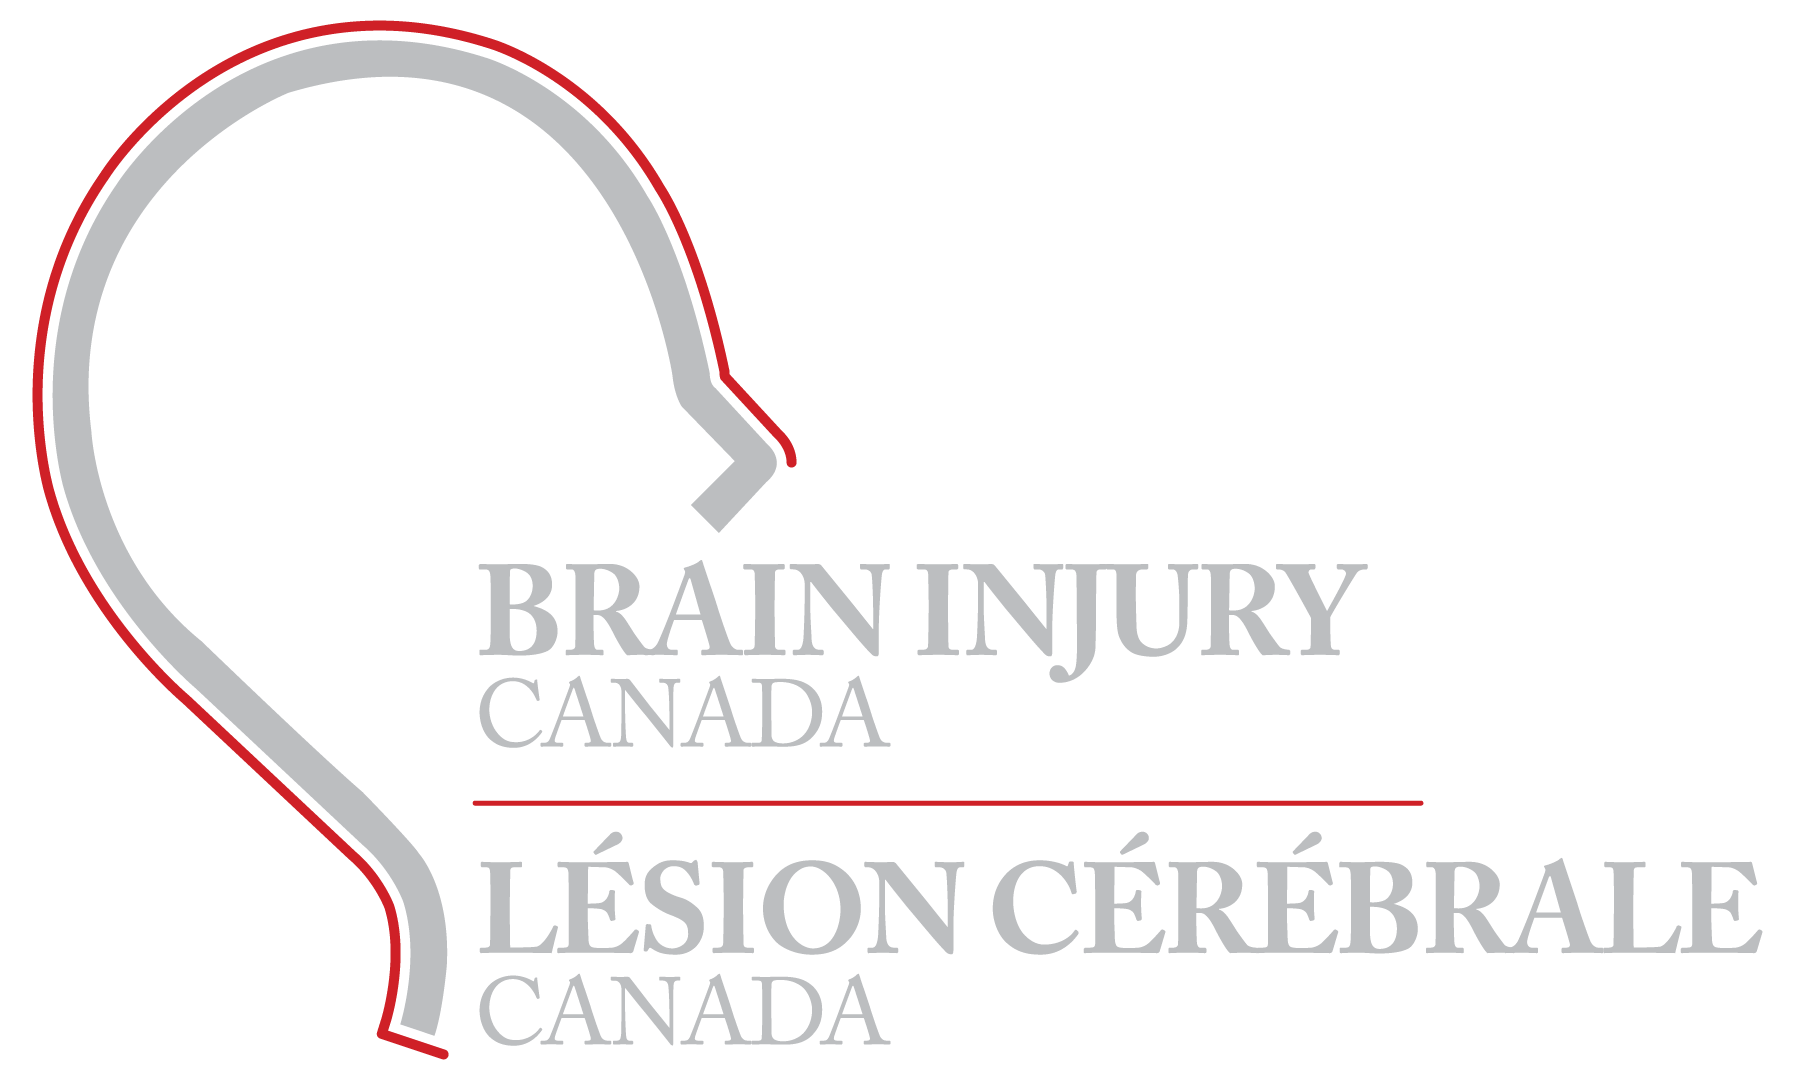 Brain Injury Canada